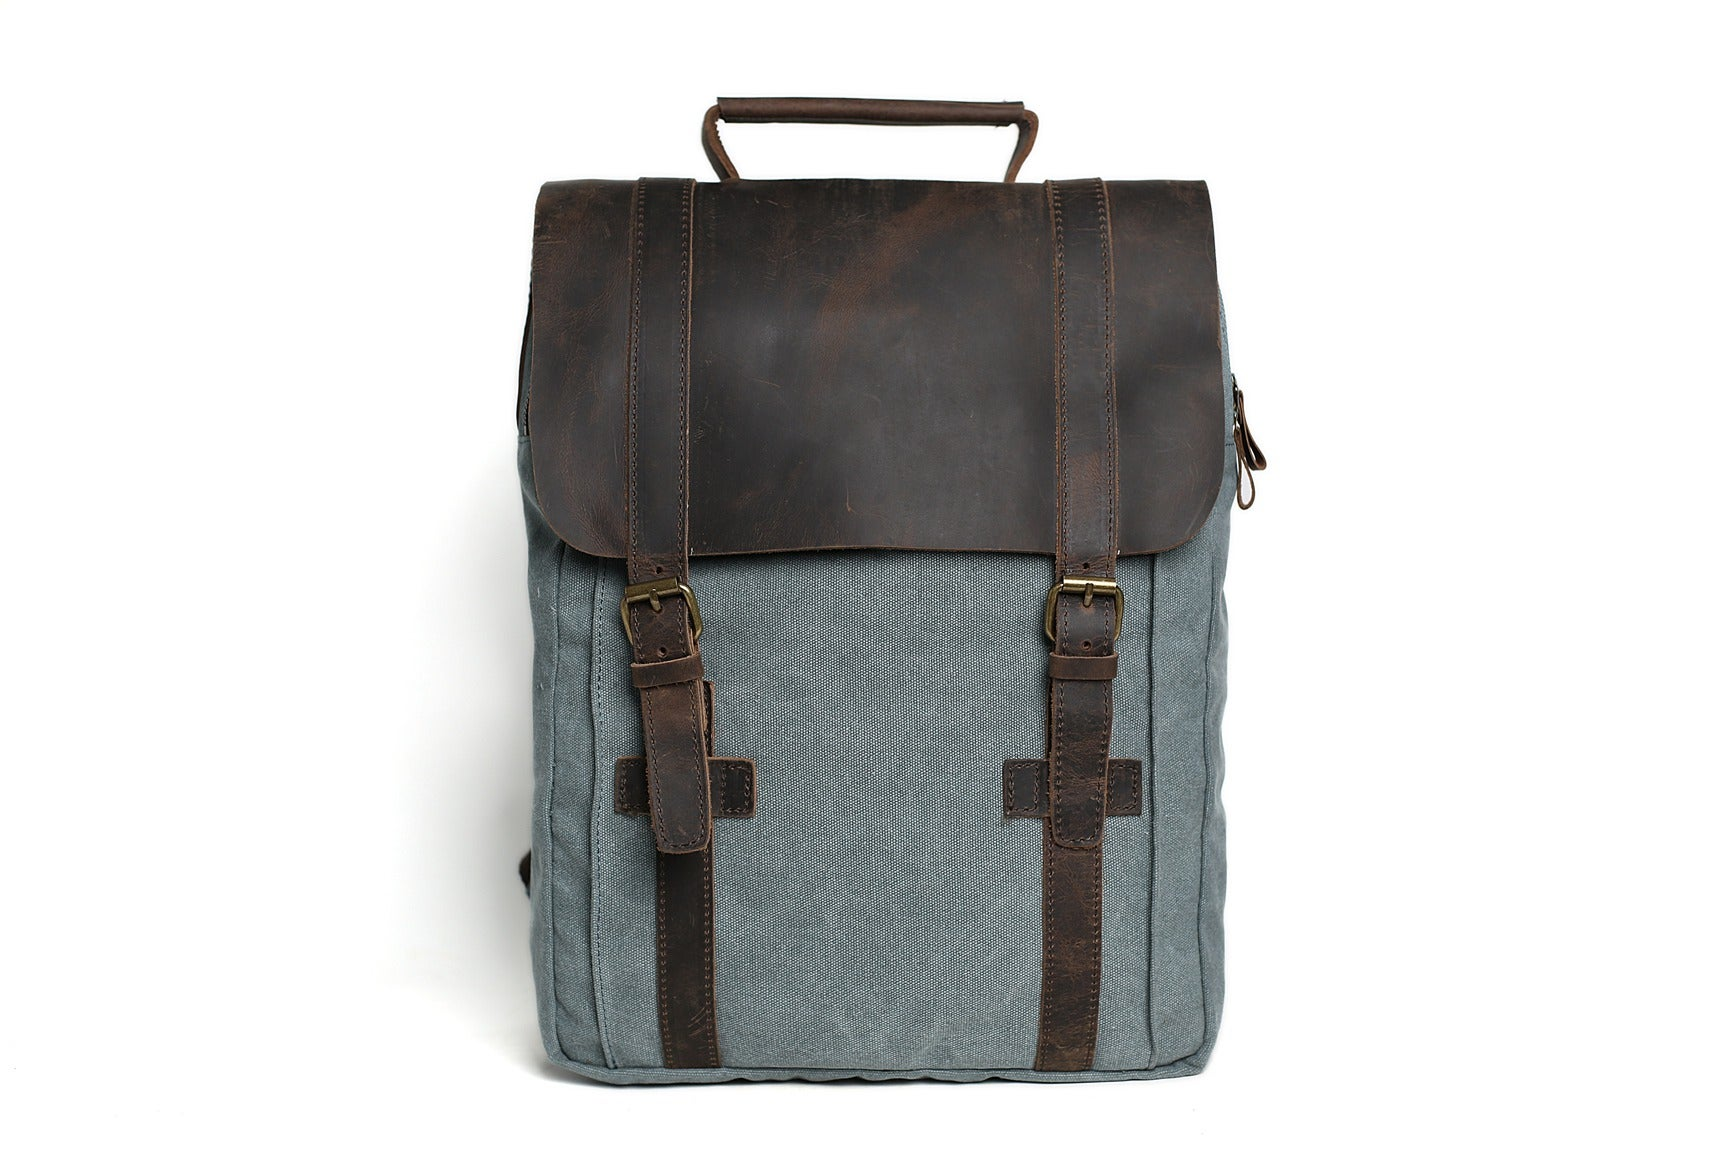 7e06950846c3 MoshiLeatherBag - Handmade Leather Bag Manufacturer — Leather-Canvas  Backpack   Laptop Bag   School Bag   Travel Bag   Backpack 1820